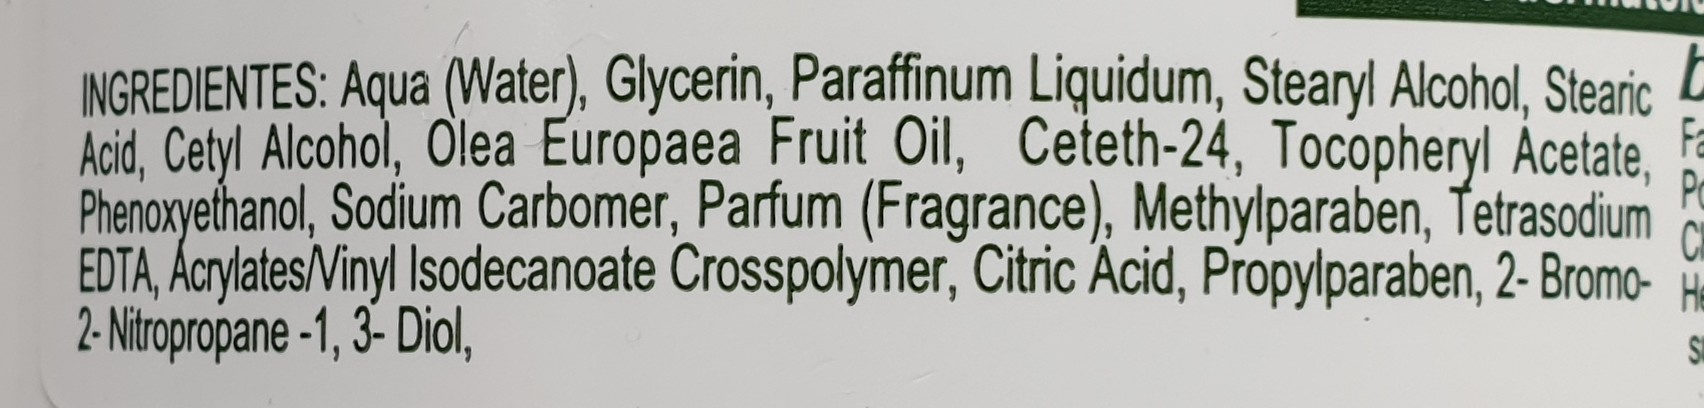 Olive oil moisturizing body cream - Ingredients